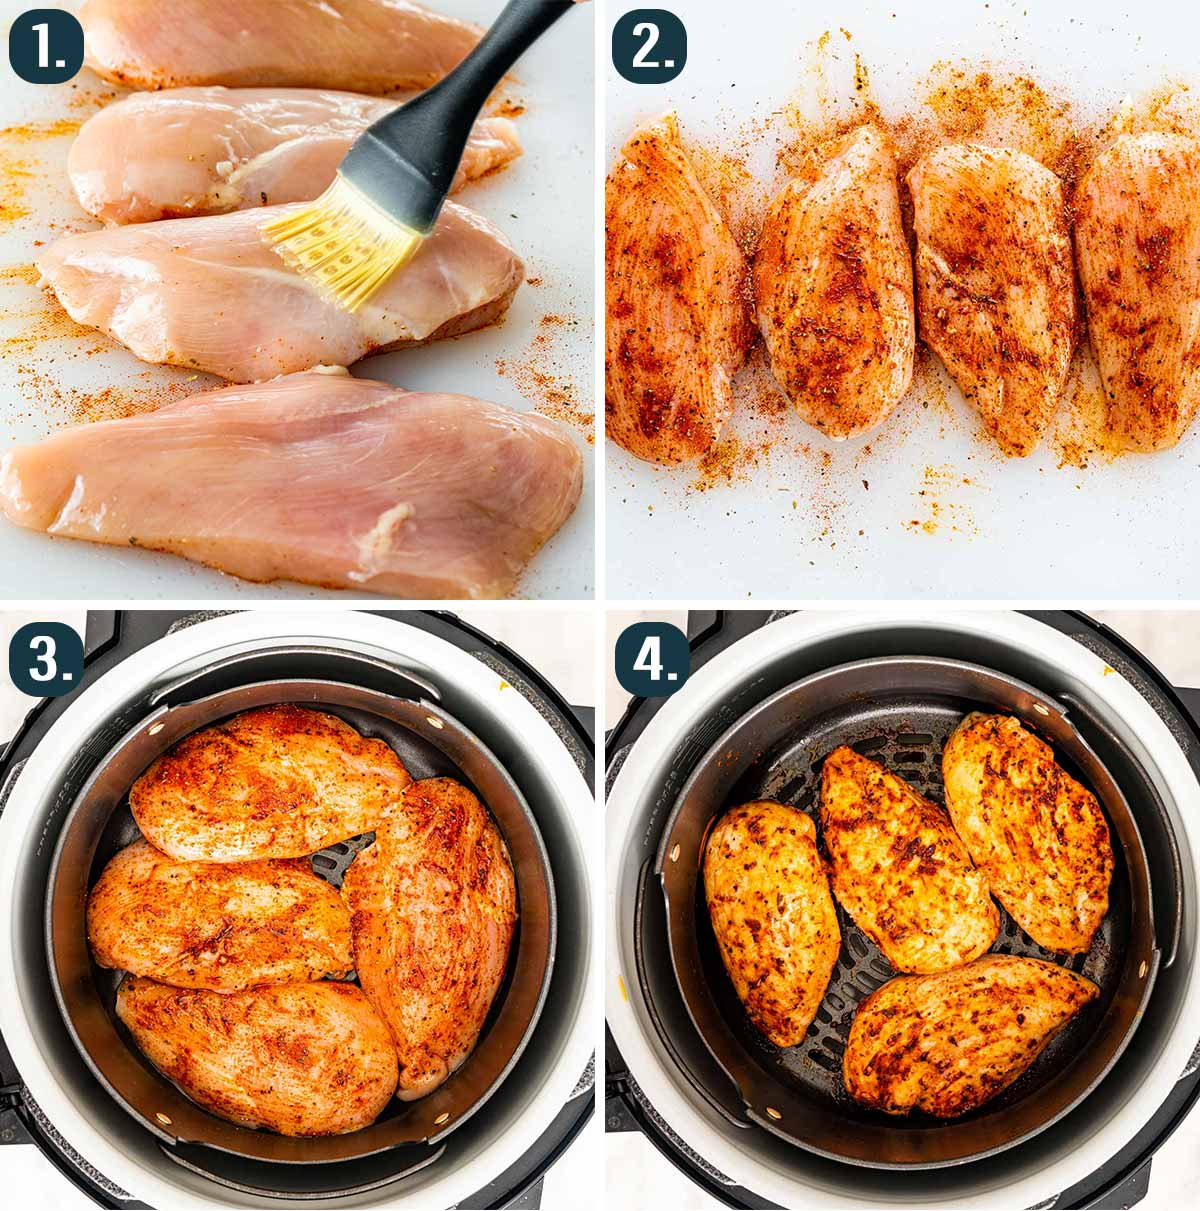 detailed process shots showing how to make chicken breast in the air fryer.